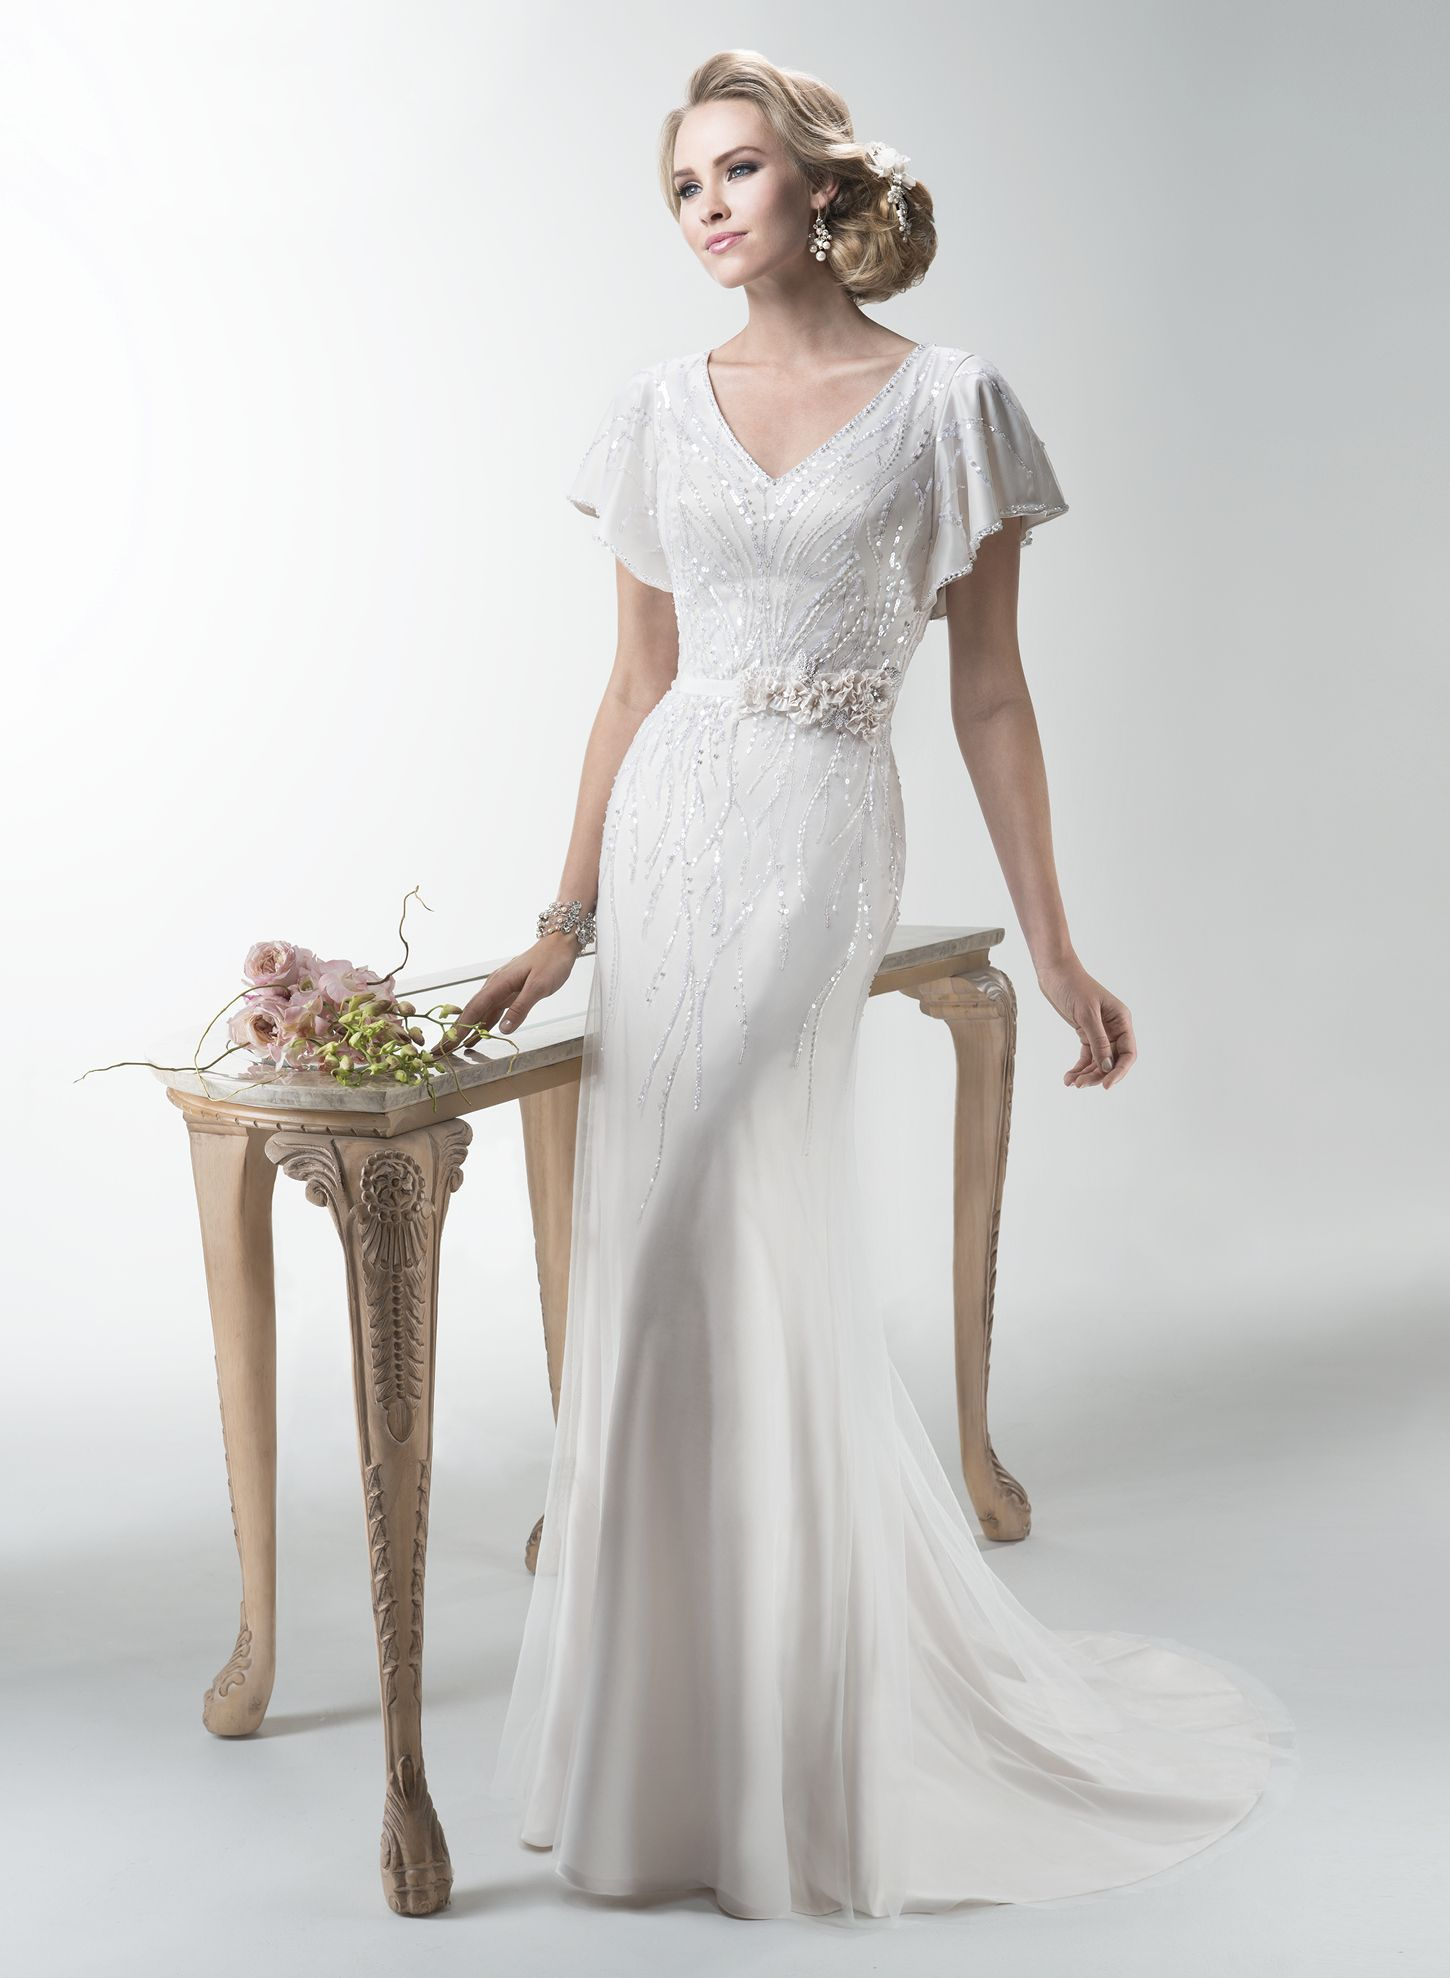 Silhouette wedding dresses simple bridal  Maggie Sottero Wedding Dresses  Maggie sottero Wedding dress and